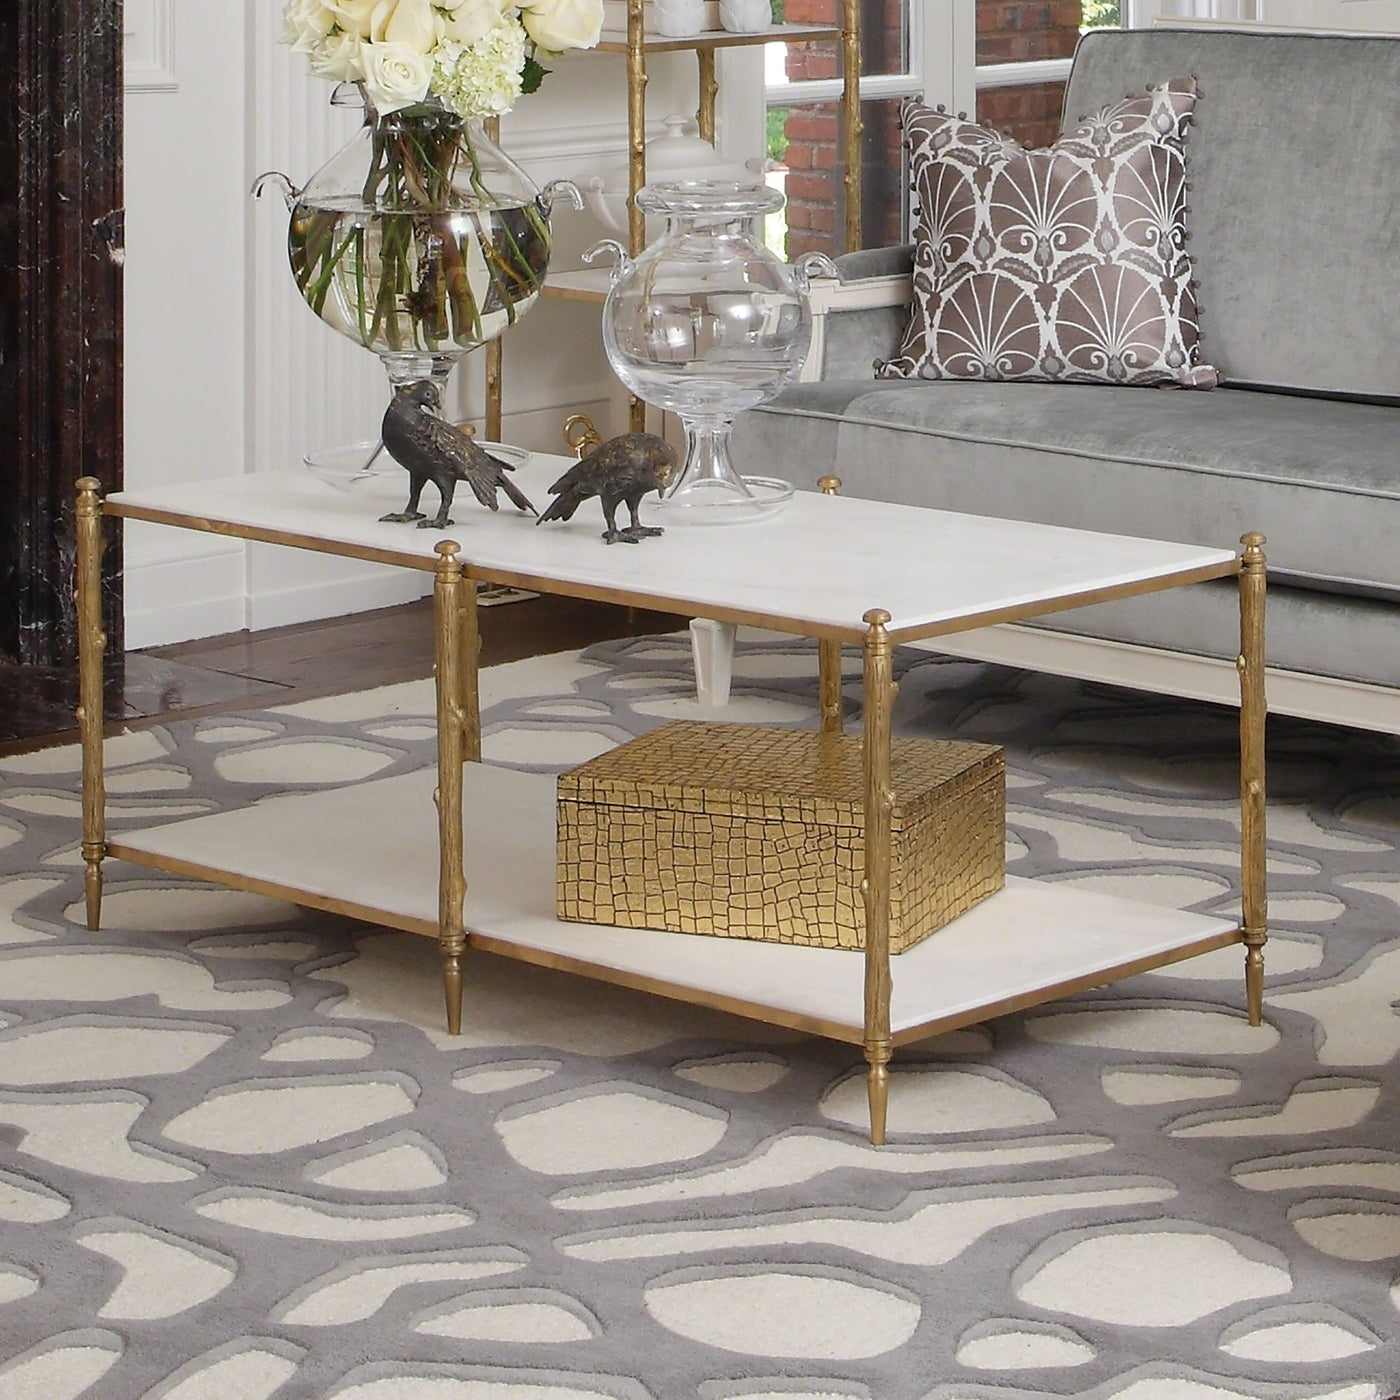 global views arbor cocktail table brass white marble shelves storage rectangle modern